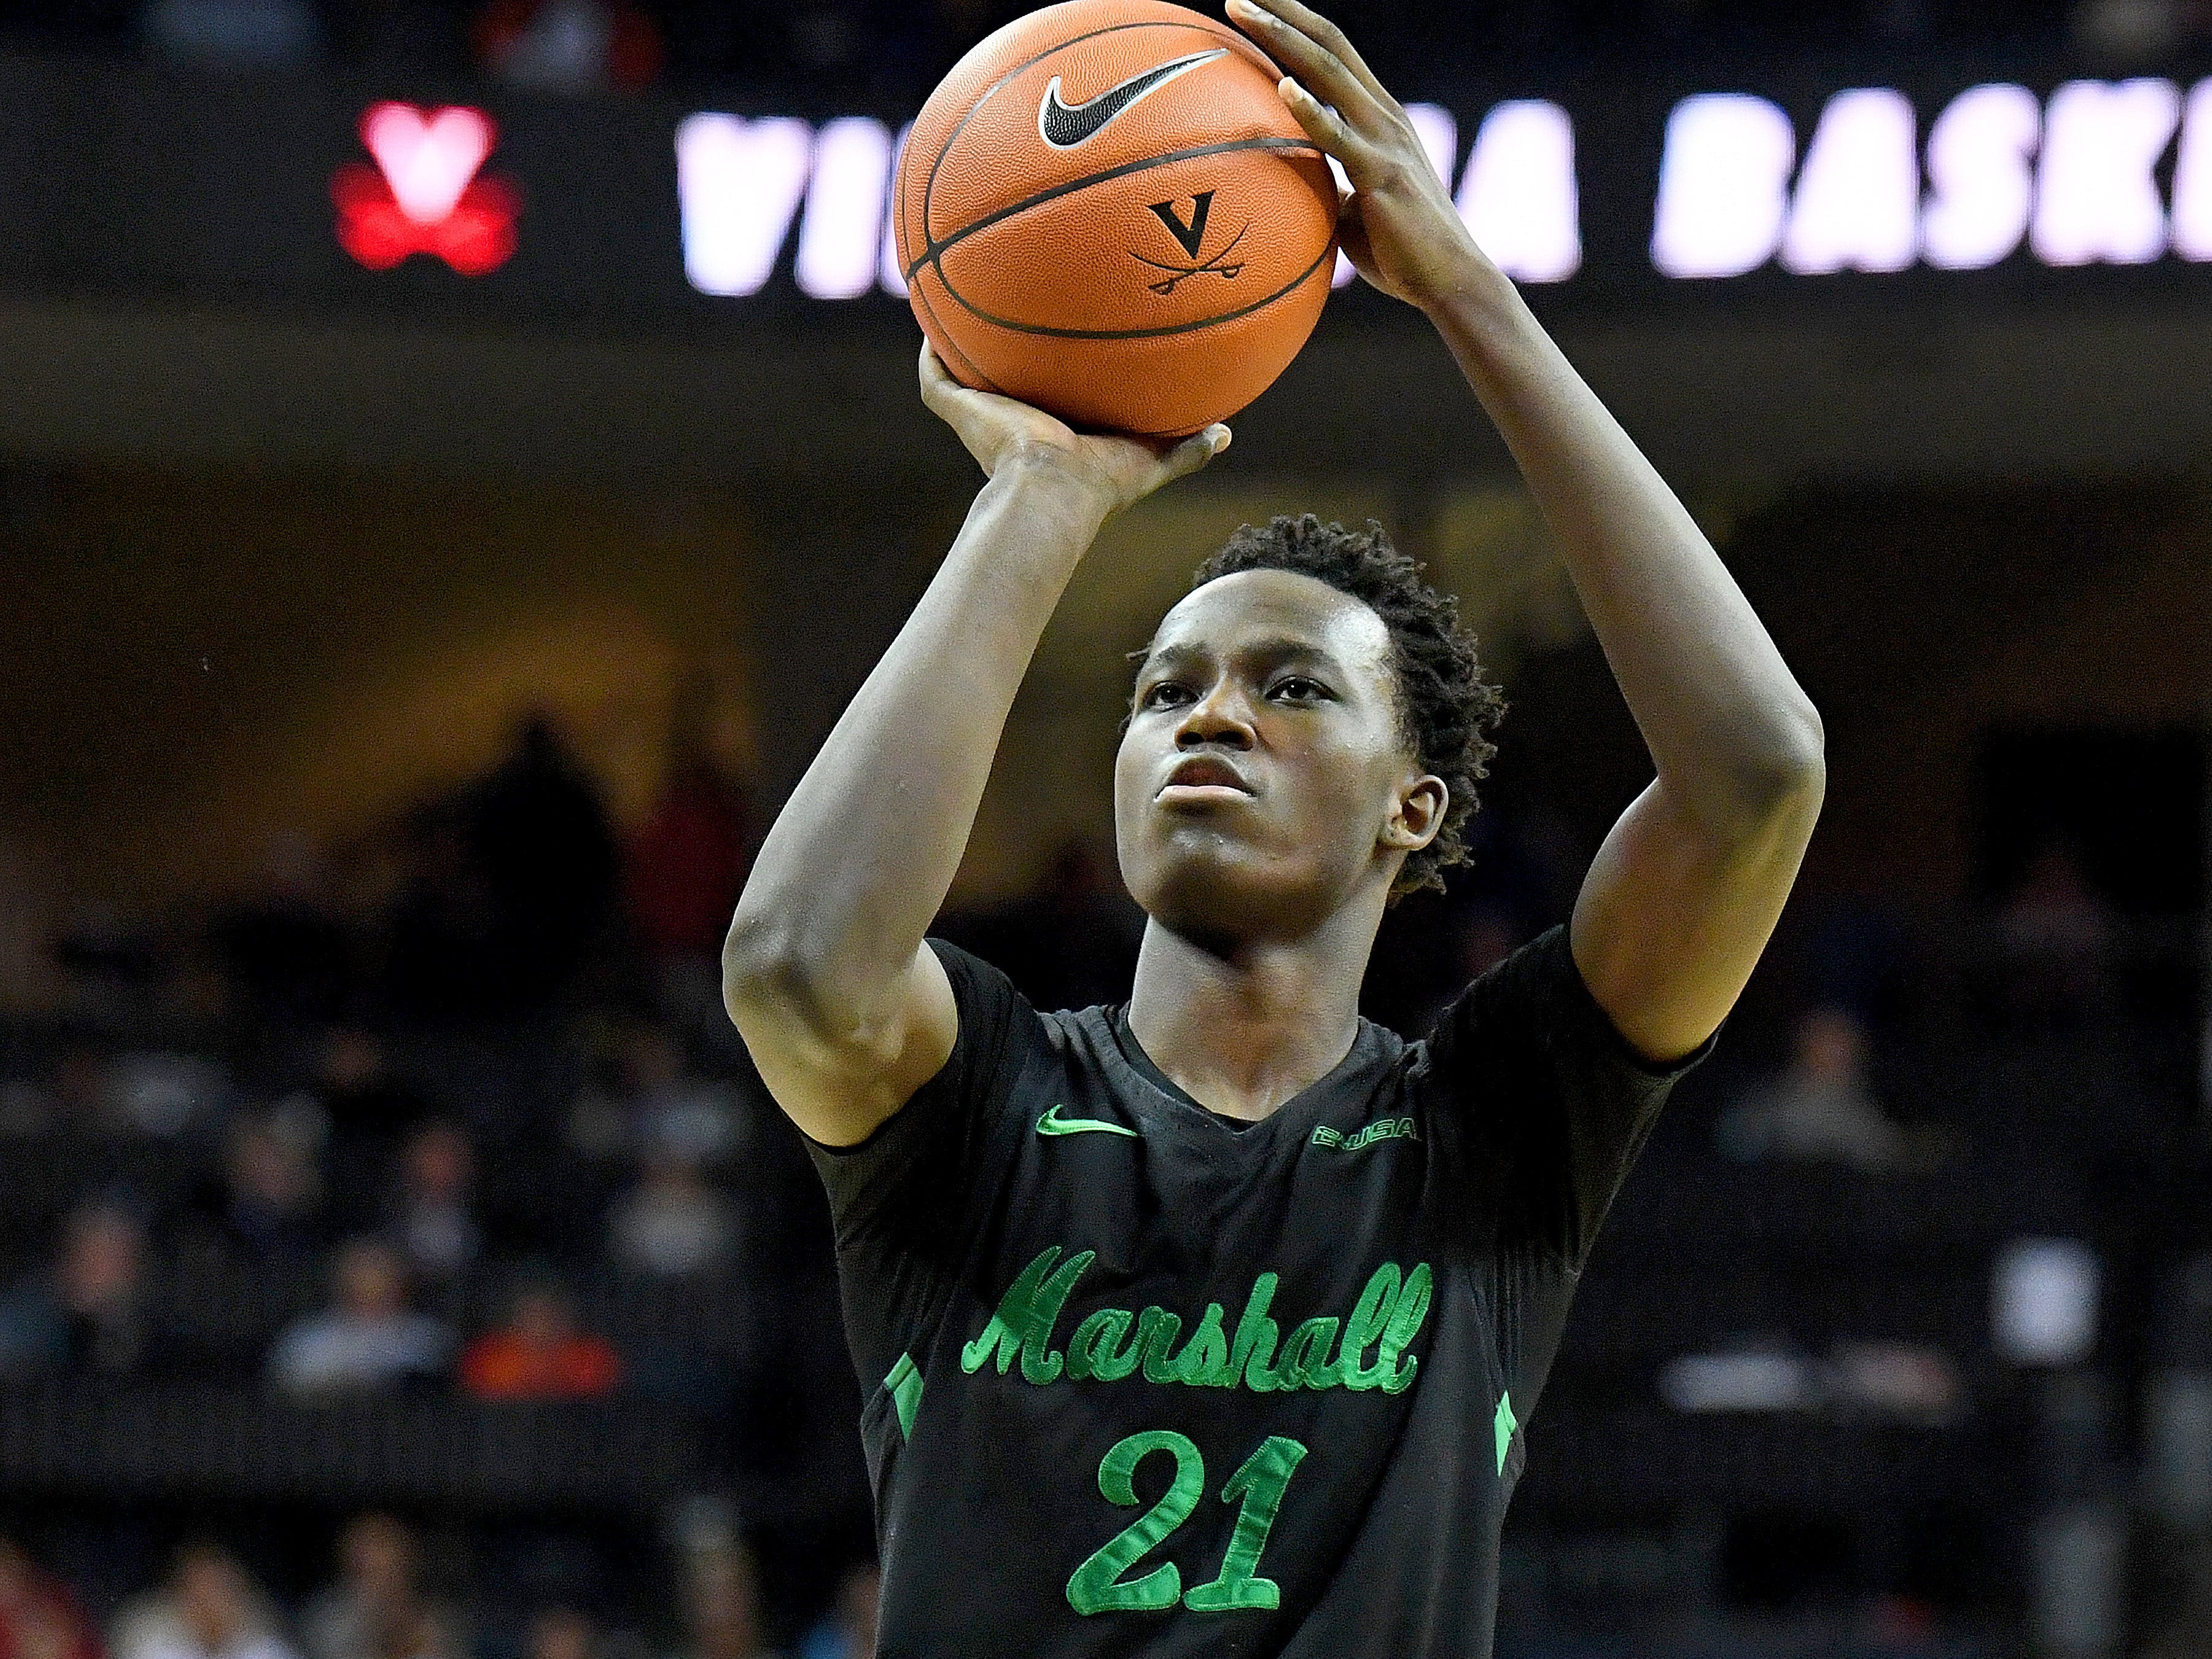 Marshall's Darius George, former R.E. Lee star, shoots a free-throw during their game against University of Virginia, played at the John Paul Jones Arena on Dec. 31, 2016.